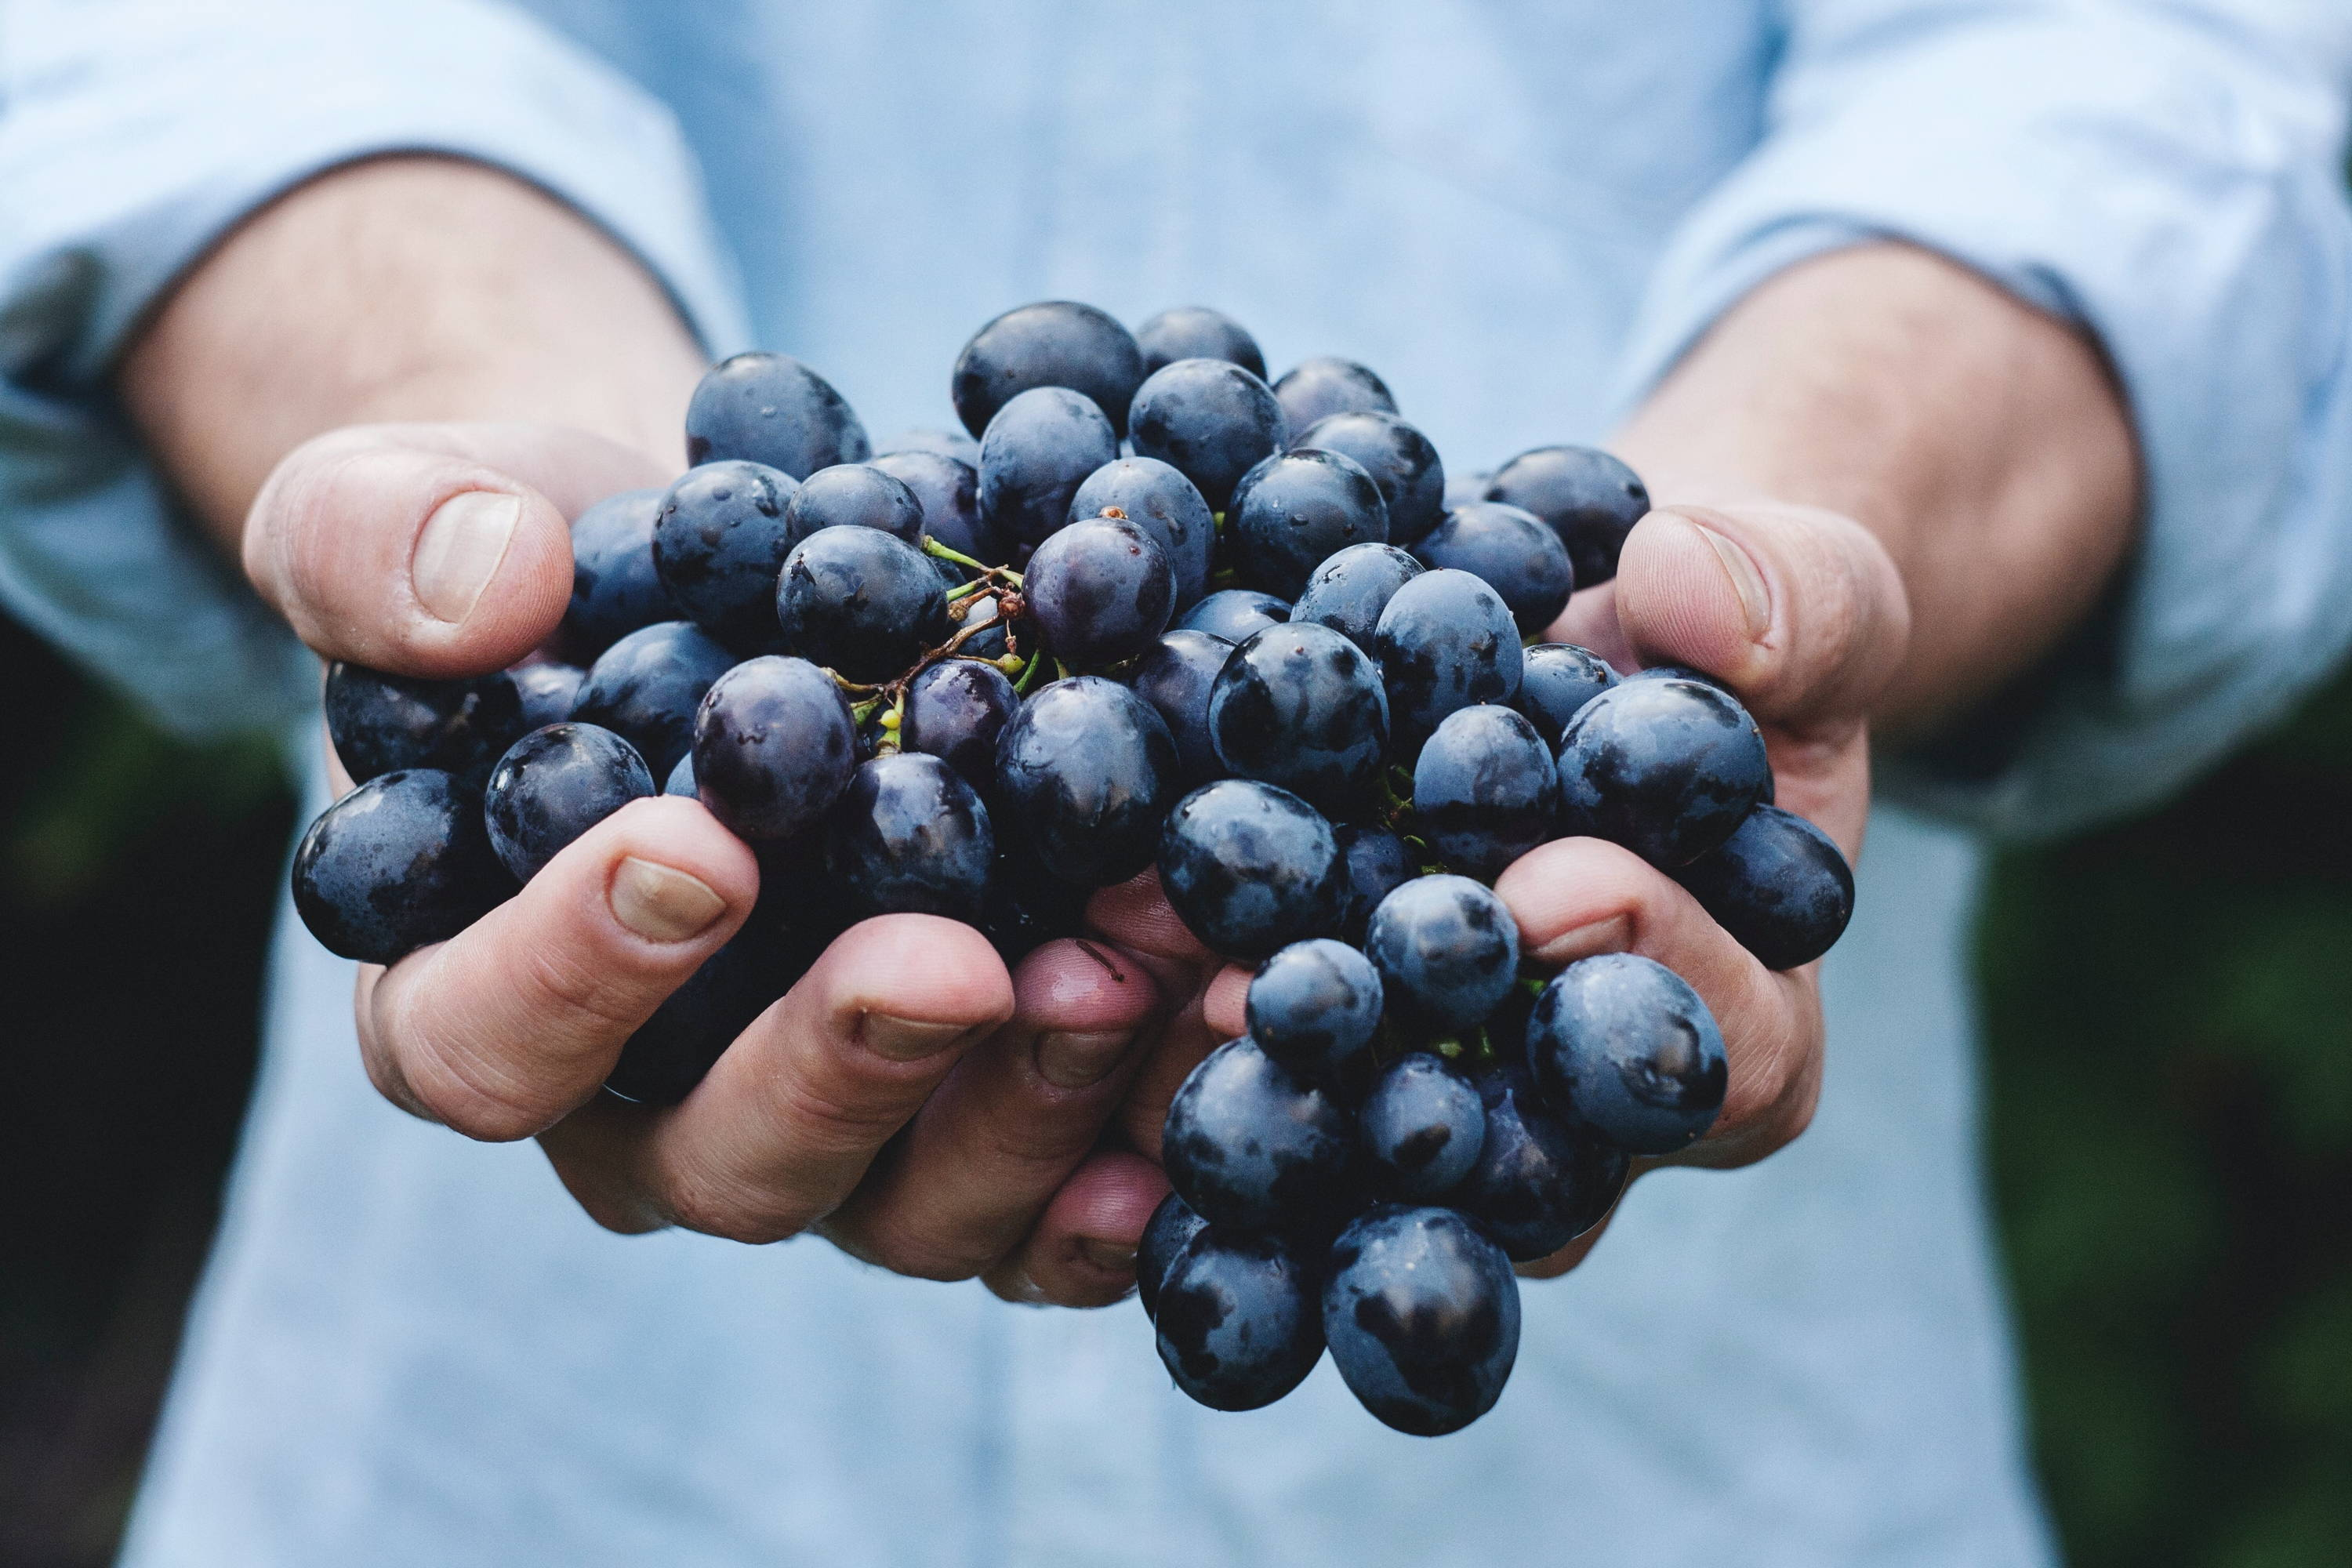 Close up of Nebbiolo grape variety in the hands of a man displaying its light colour.